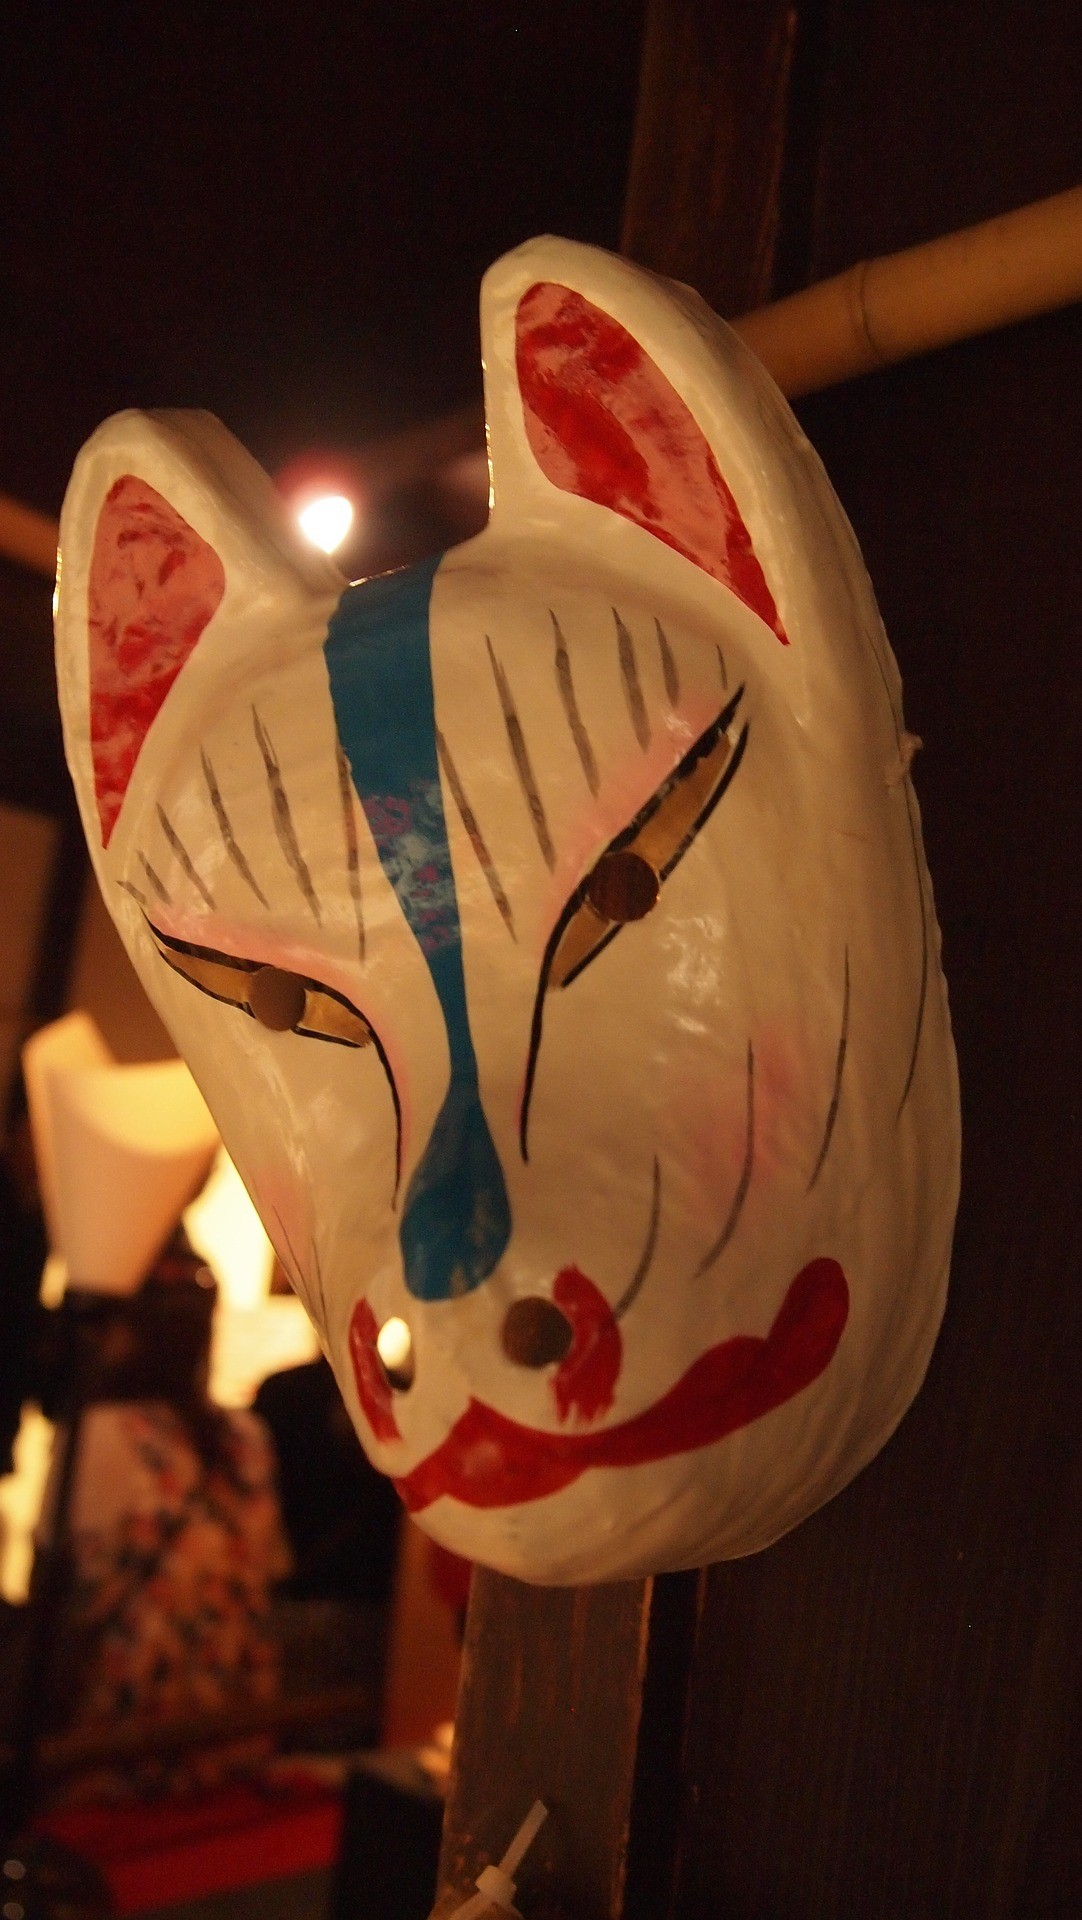 New Years masks with their own hands